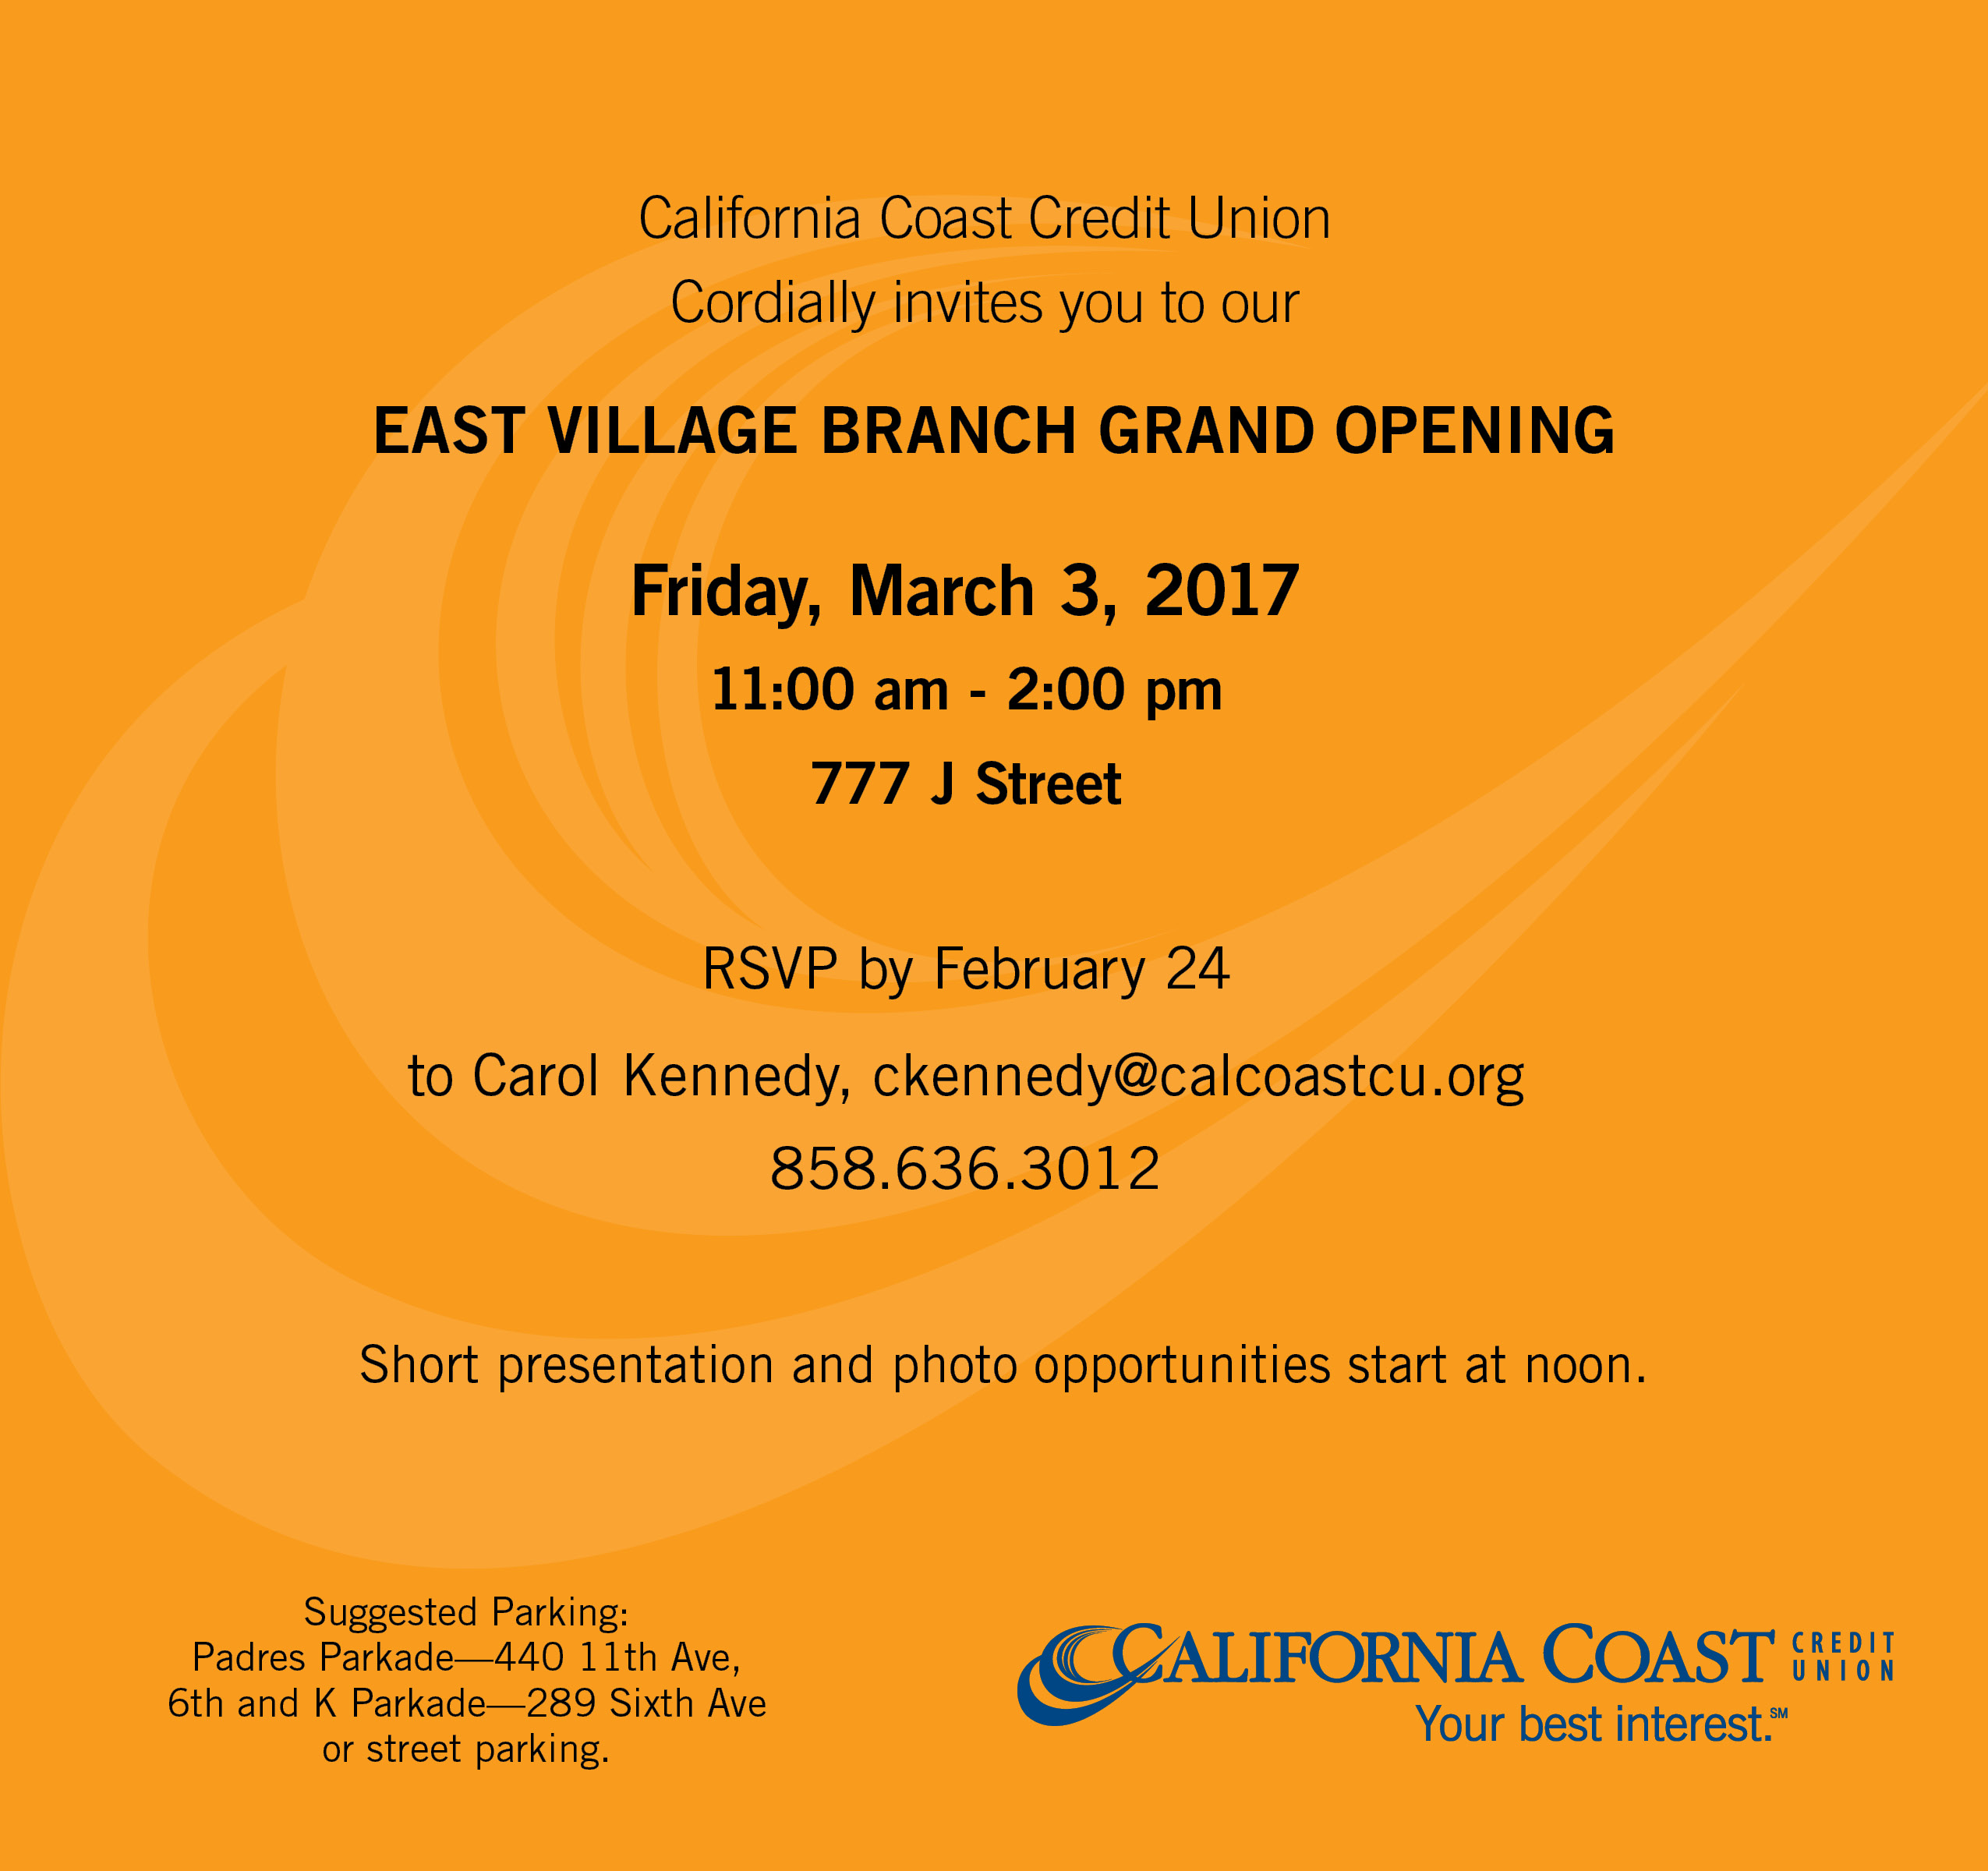 Partners Credit Union Branch: Downtown San Diego Partnership